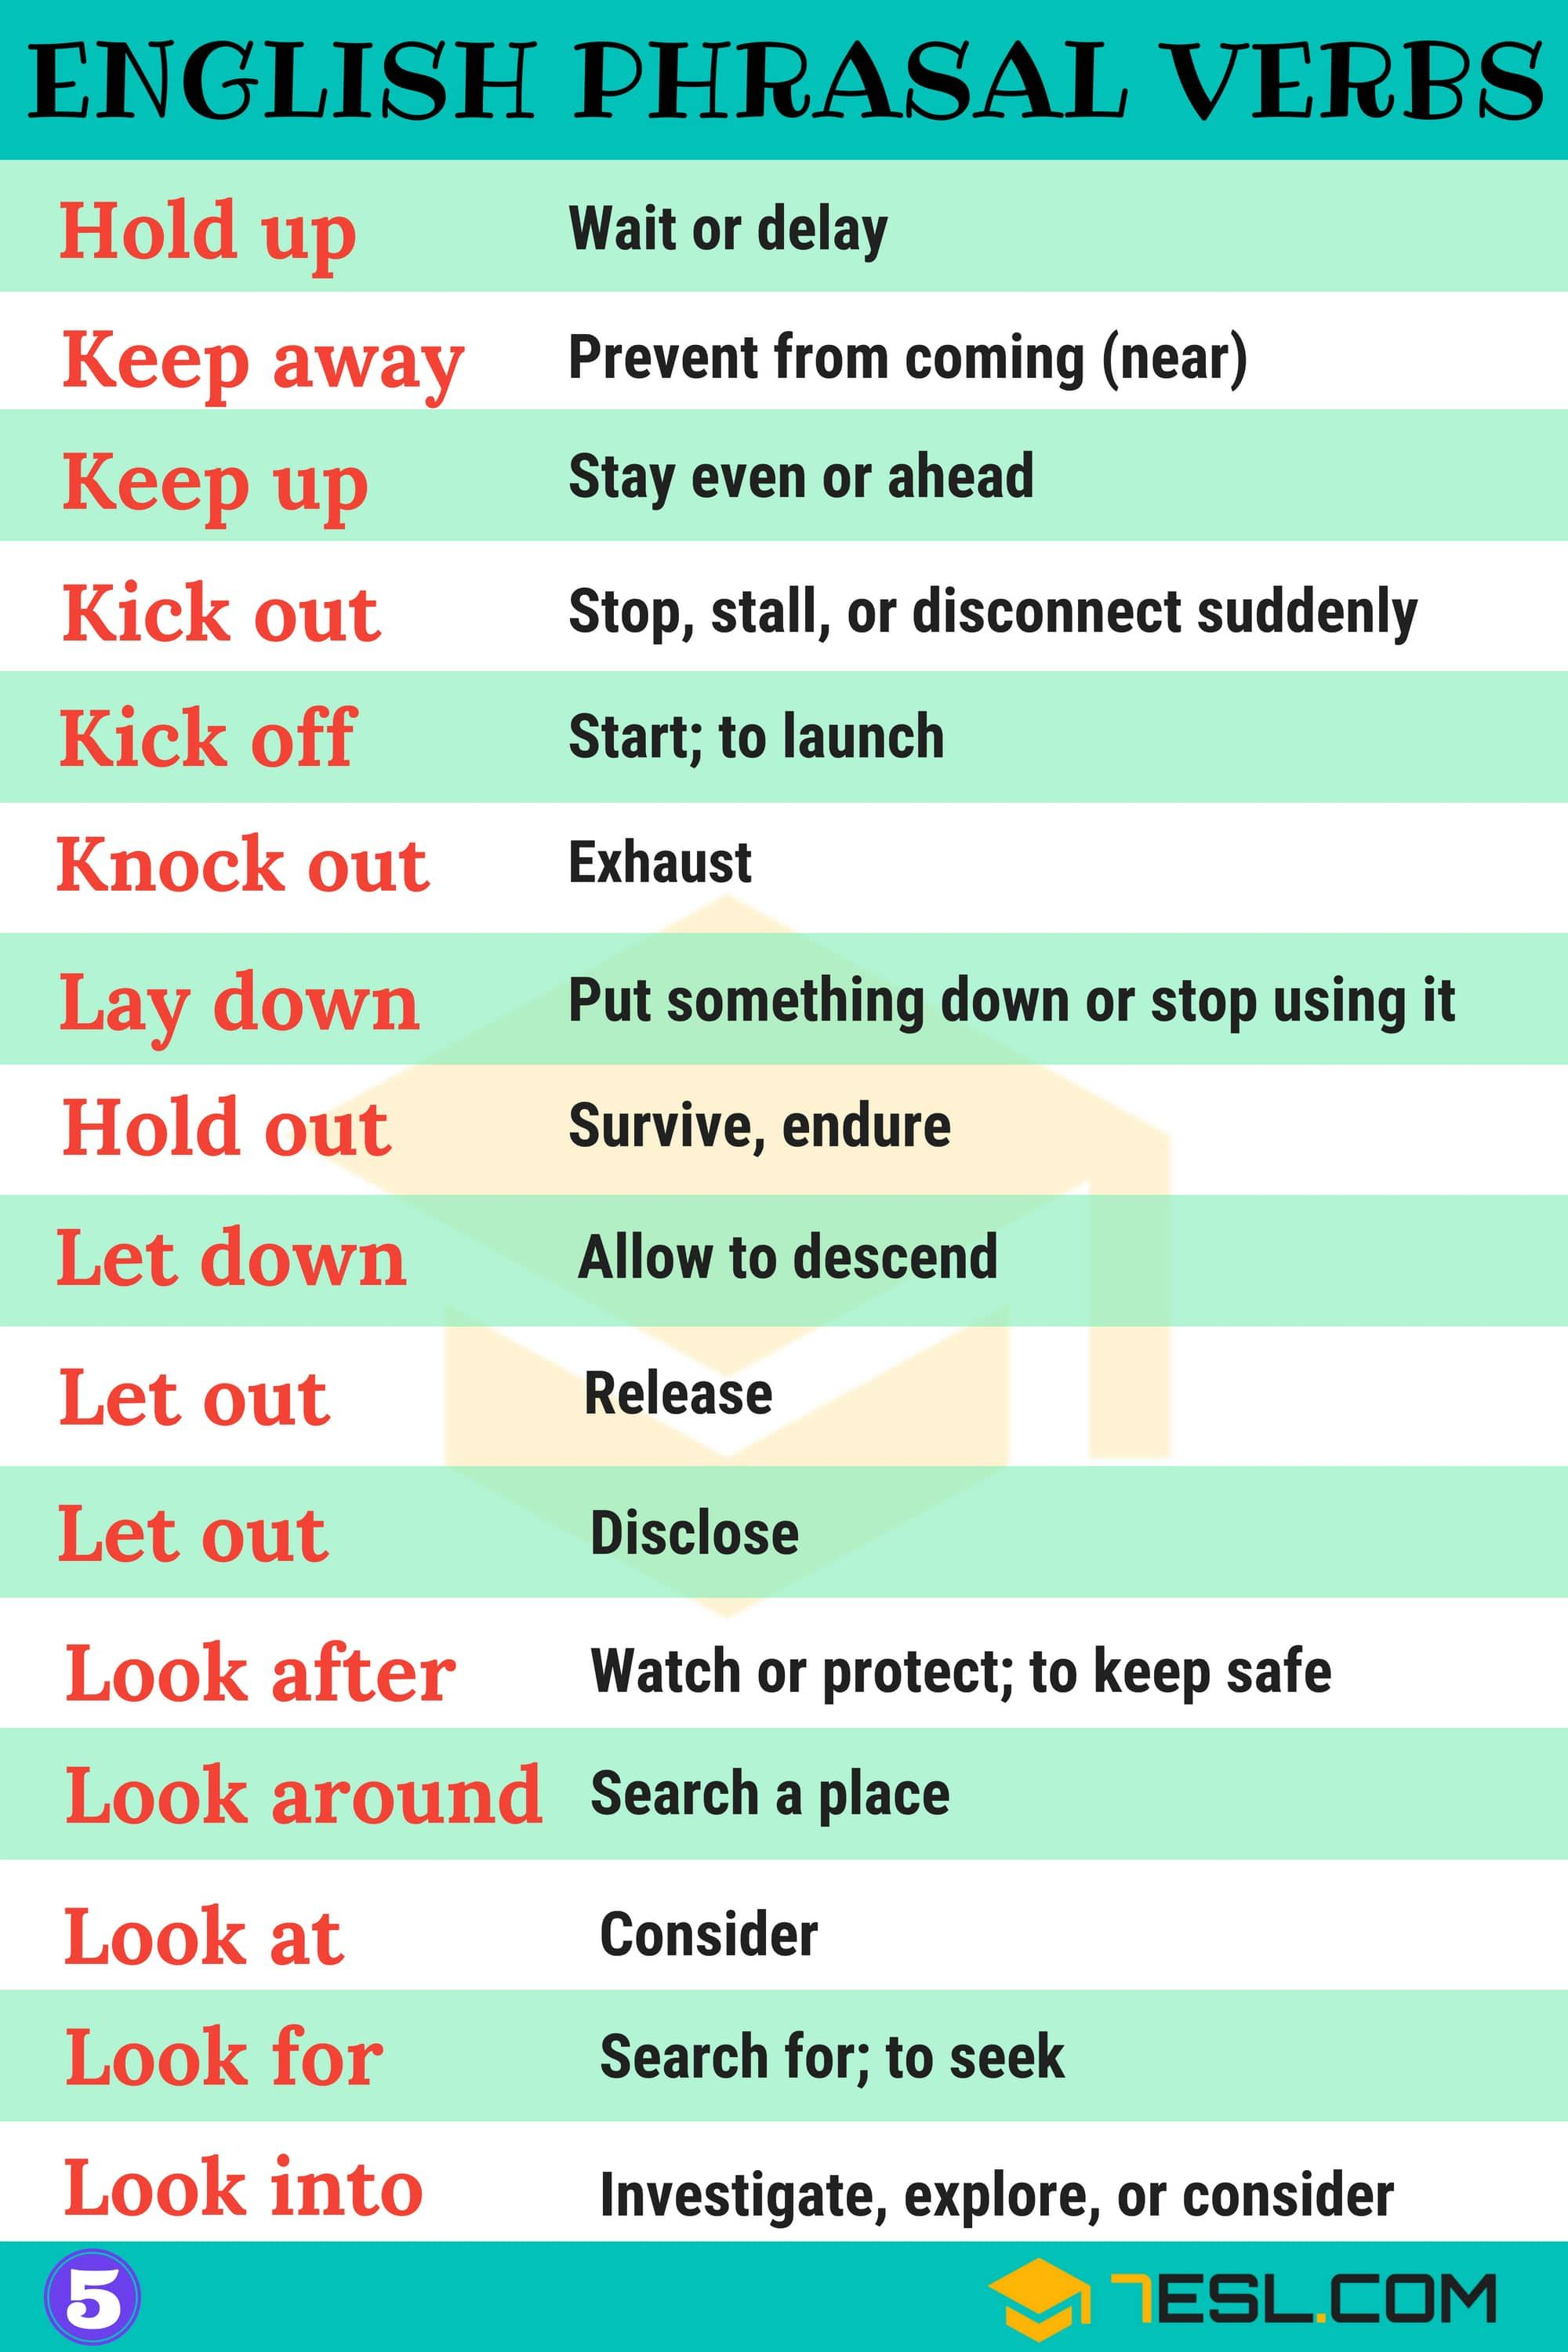 2000 Phrasal Verbs List From A Z To Sound Like A Native 7esl English Verbs English Idioms English Language Learning [ 3000 x 2000 Pixel ]